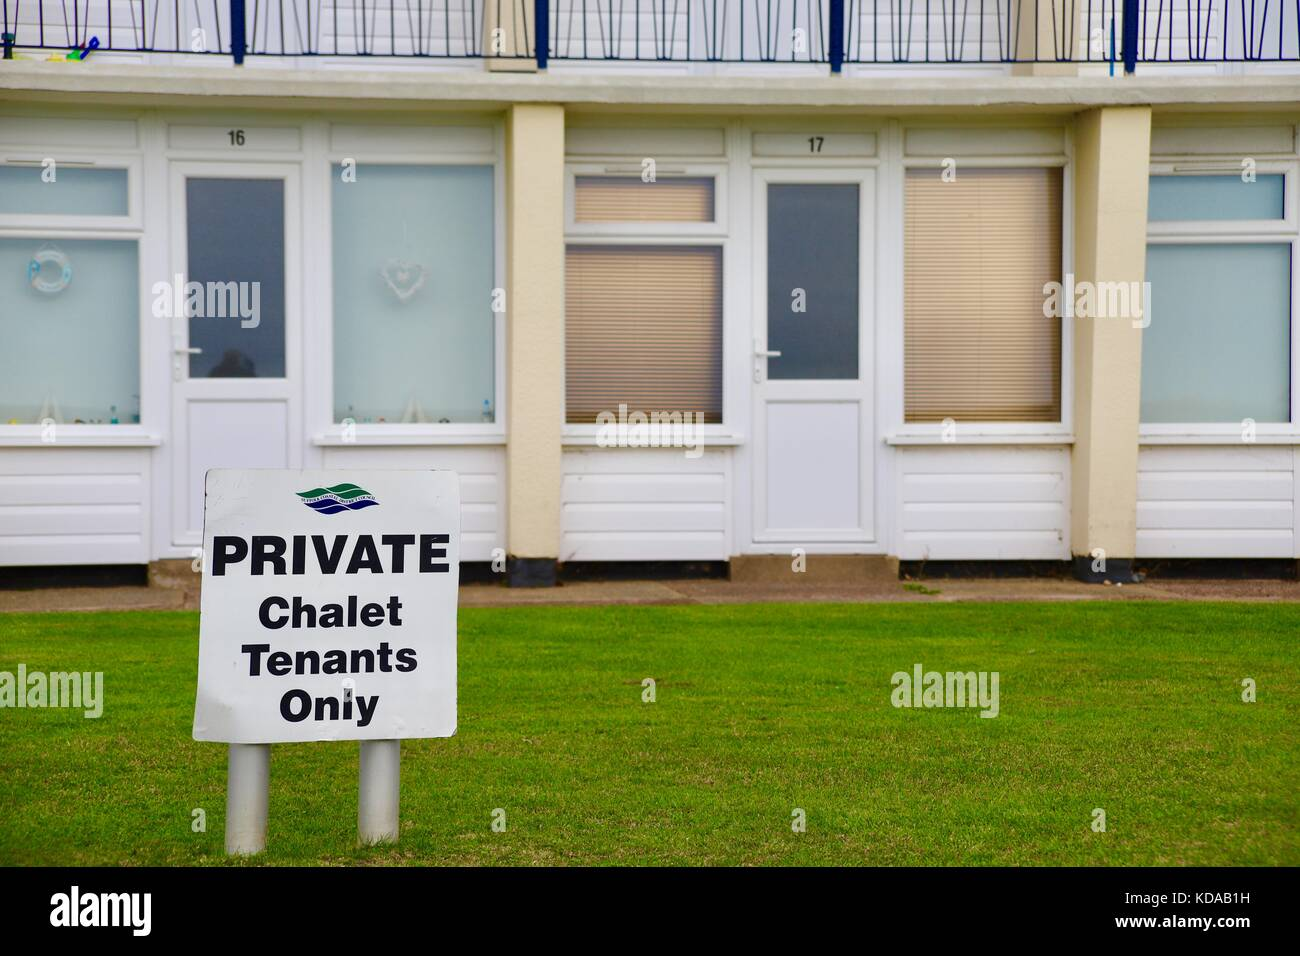 PRIVATE - chalet tenants only. A warning notice in front of seaside chalets in Felixstowe, Suffolk. - Stock Image